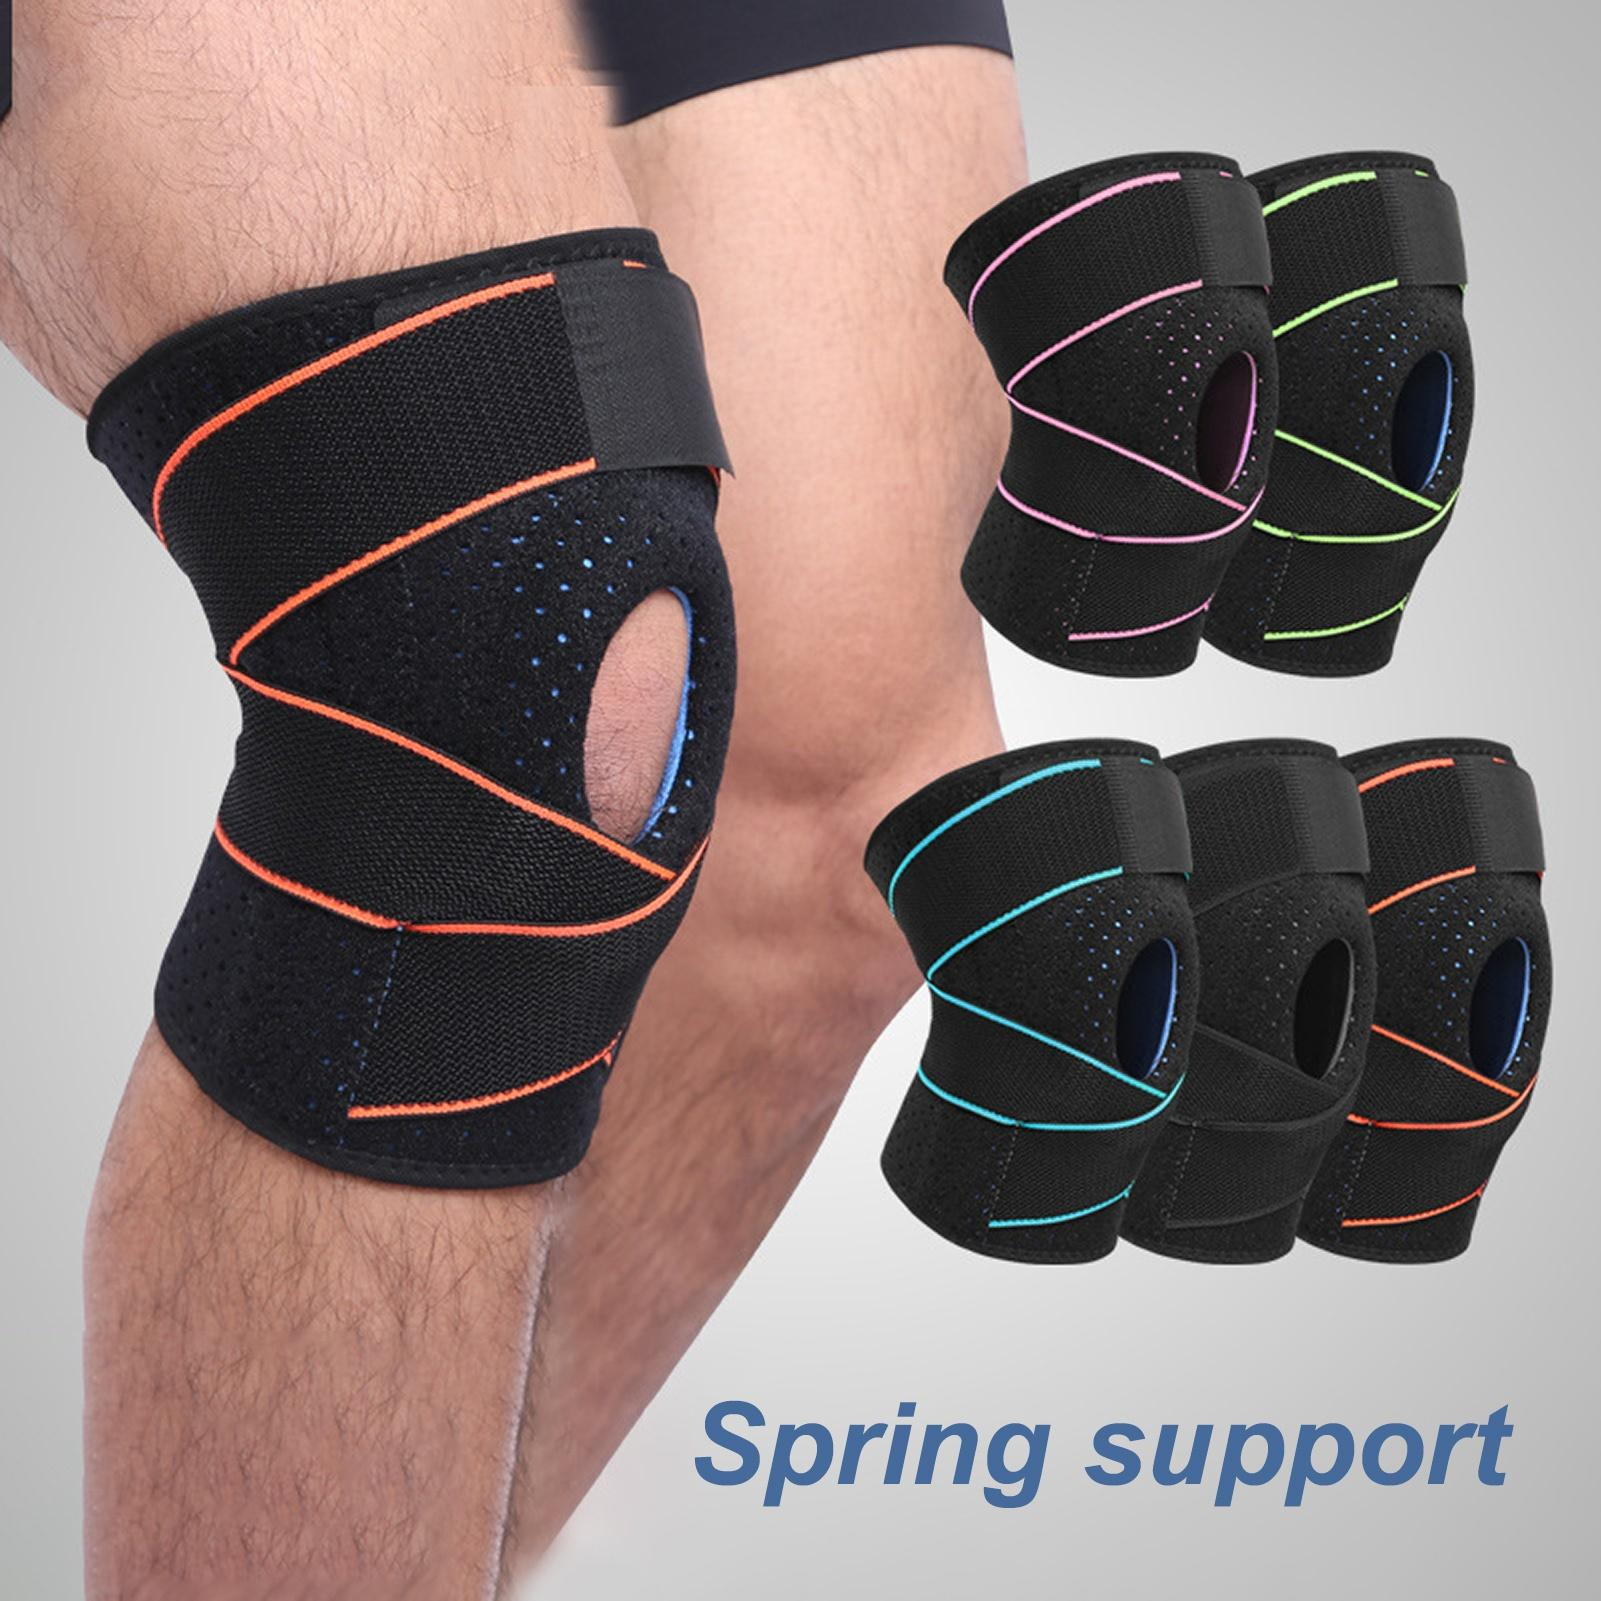 1PCS Fitness Knee Support Sports Safety Brace Black Pad Protector Band for Football